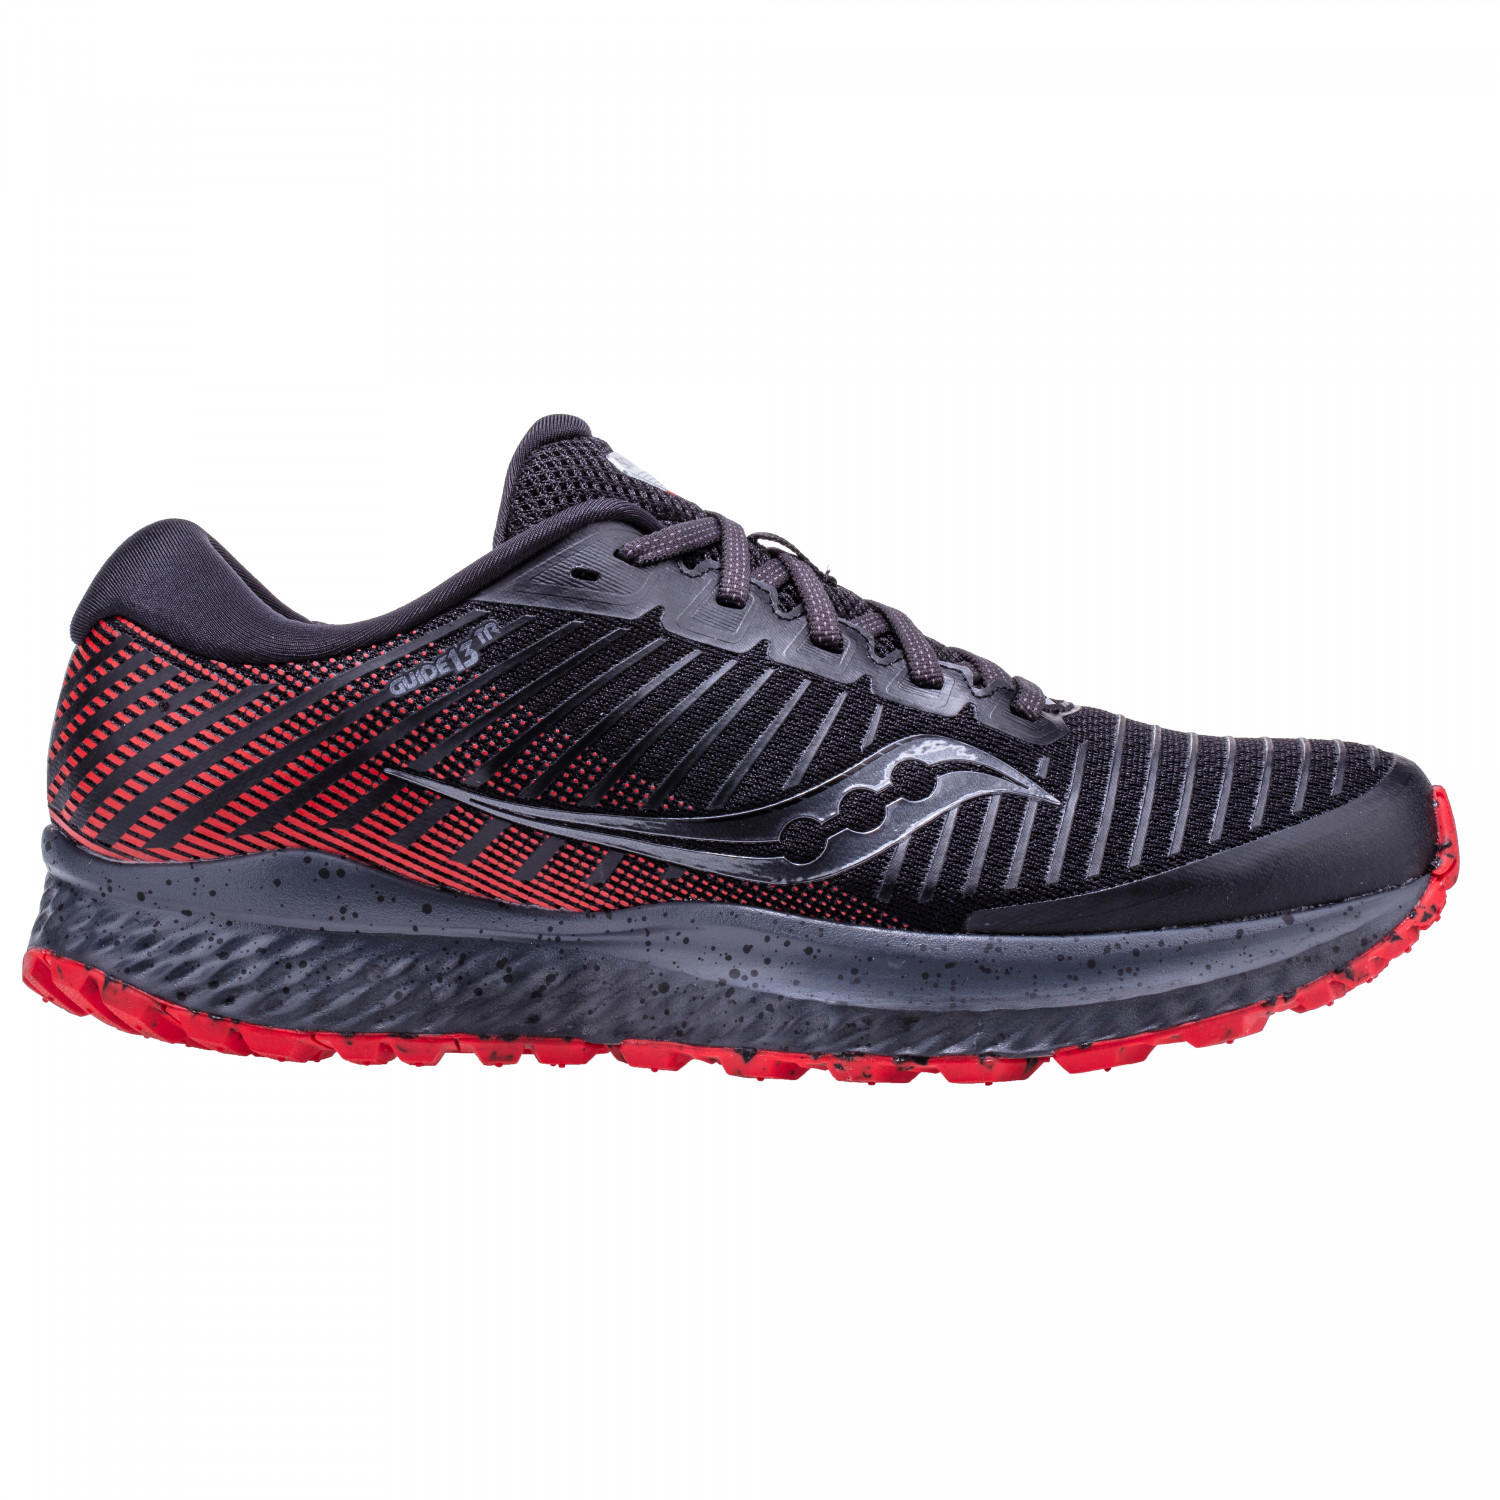 Iso 2 TR - Trail running shoes